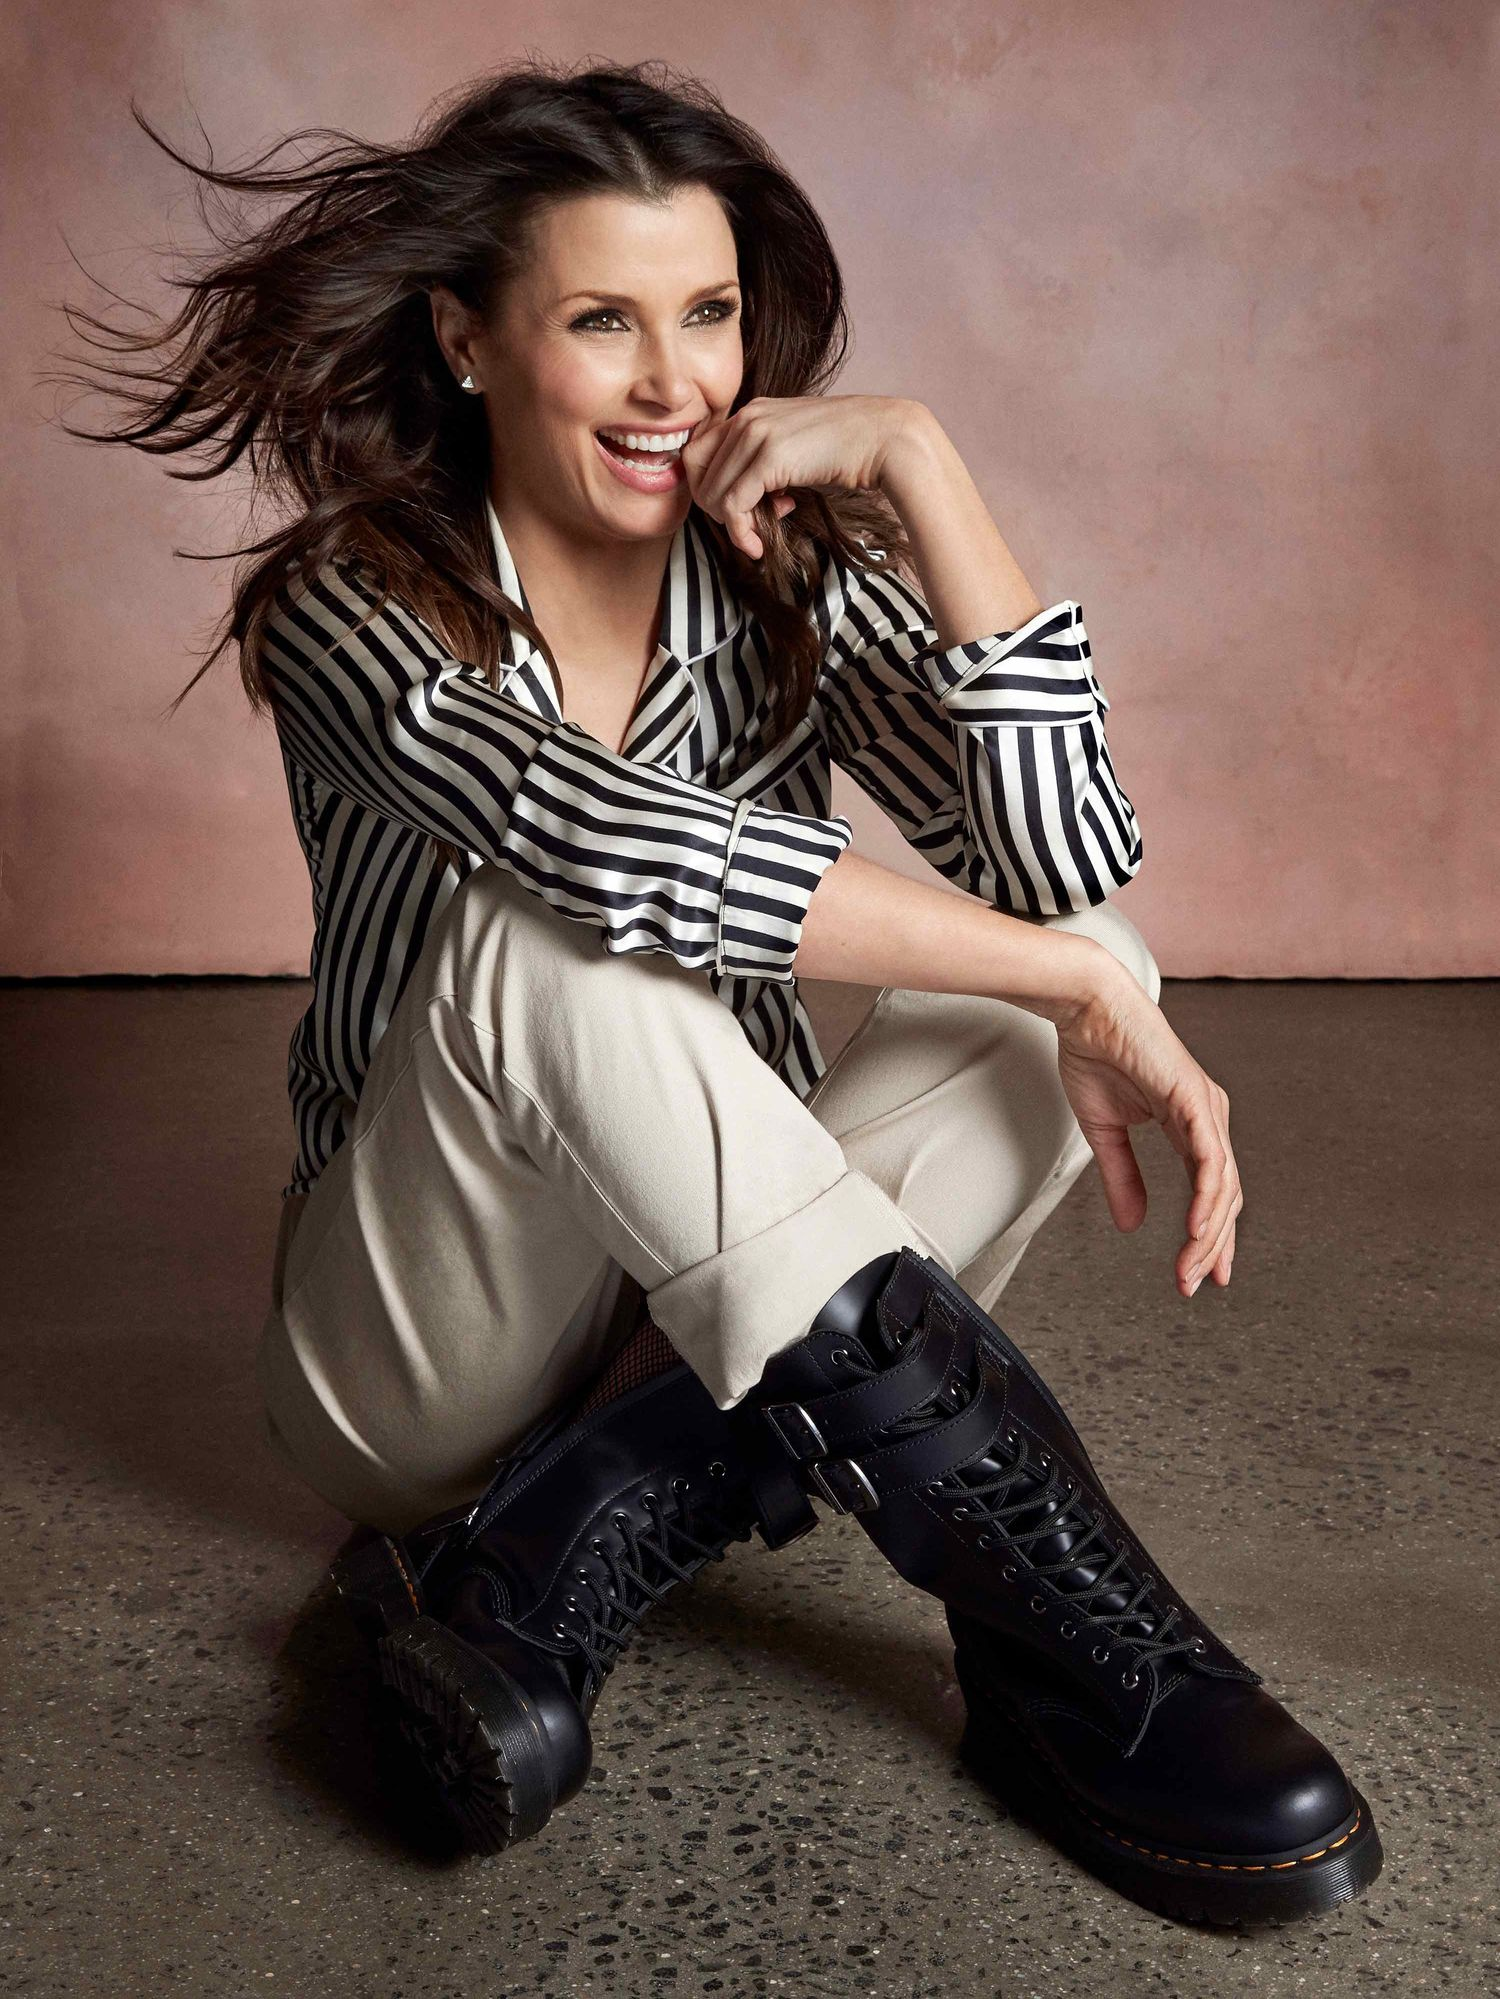 Bridget Moynahan sitting wearing striped shirt and black leather boots